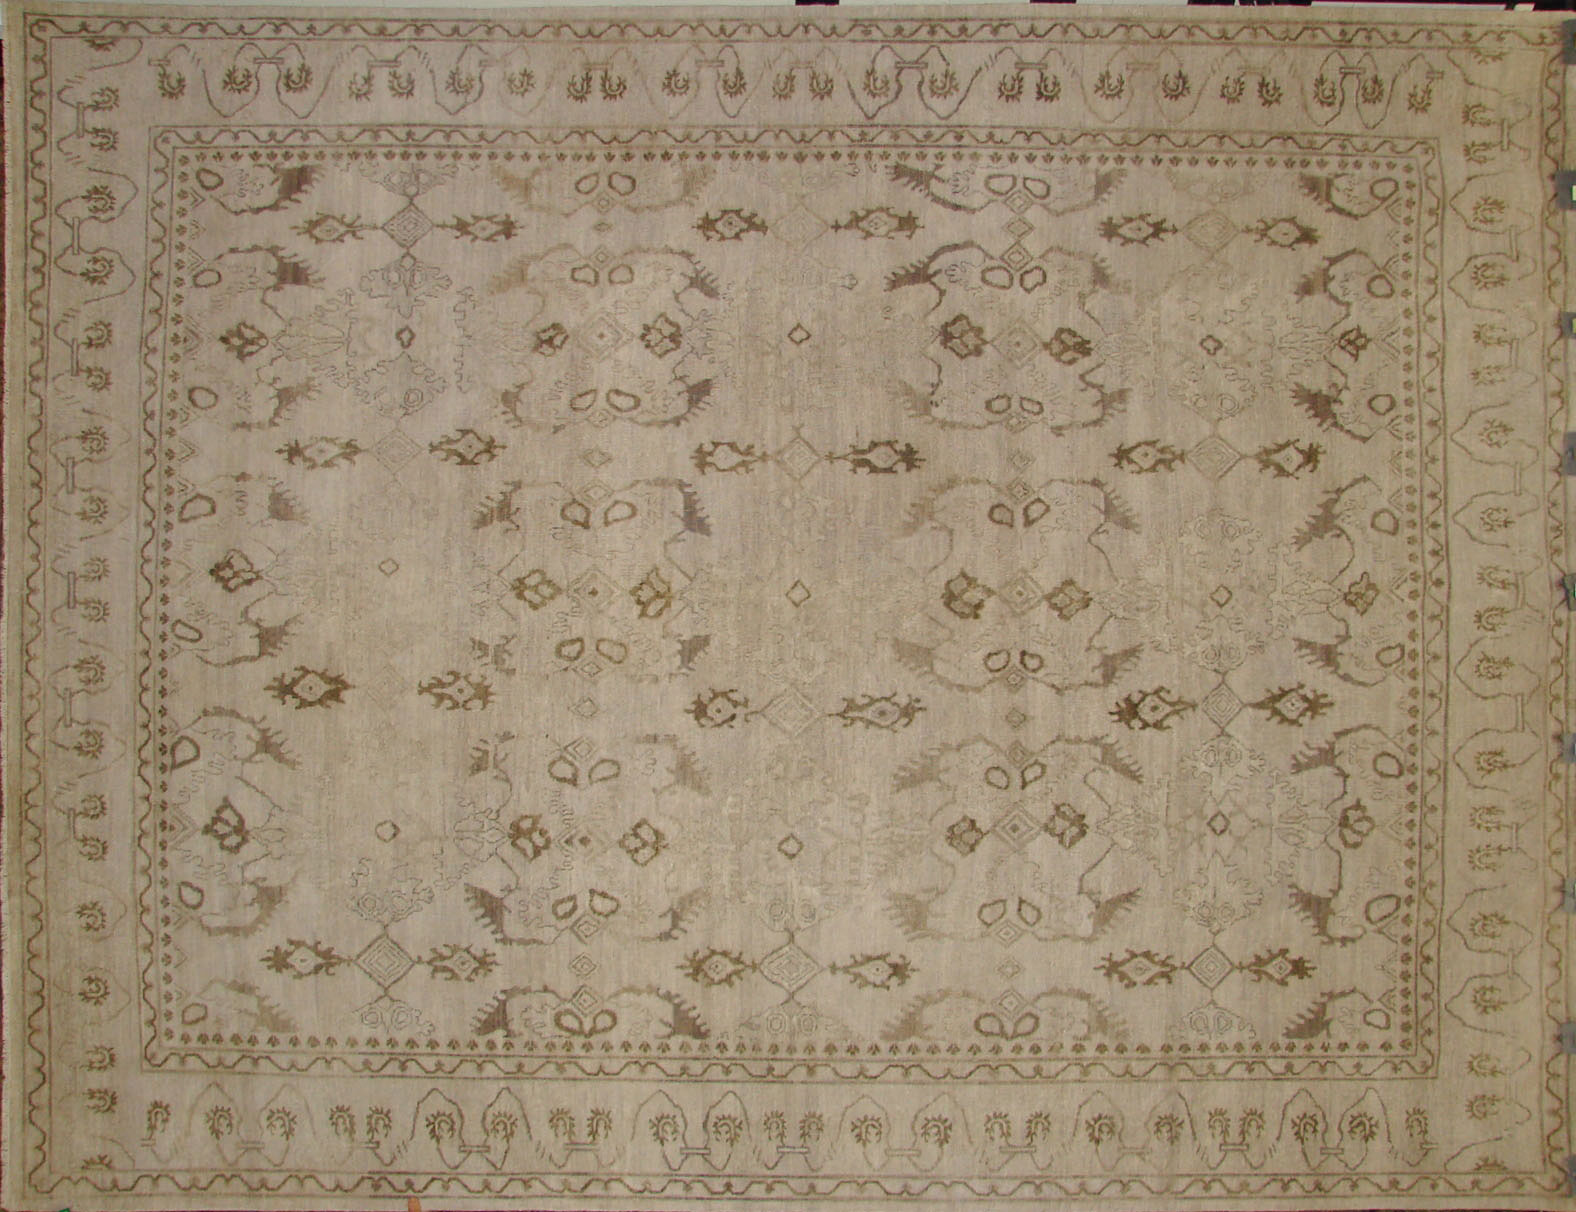 9x12 Antique Revival Hand Knotted Wool Area Rug - MR18095